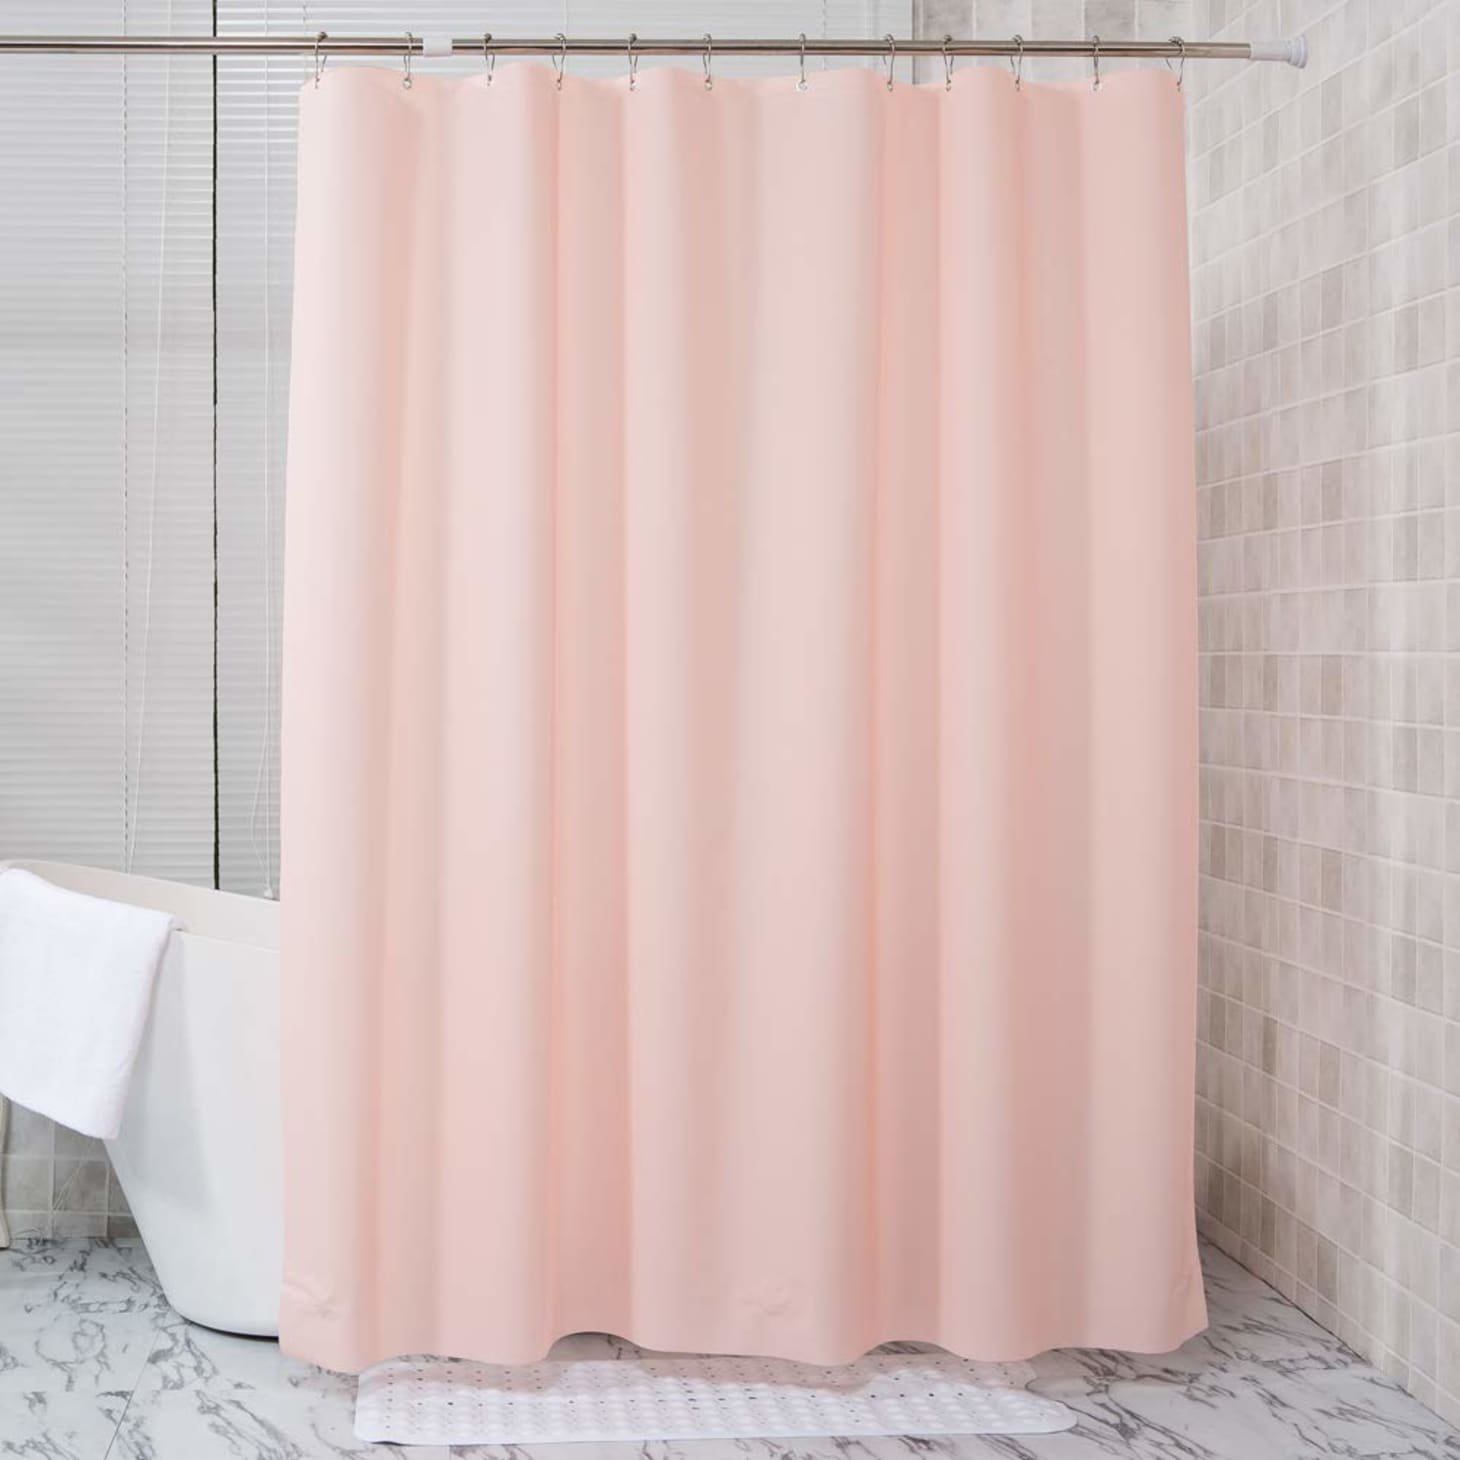 Really Cool Shower Curtains.The Best 13 Plastic Shower Curtain On Amazon Apartment